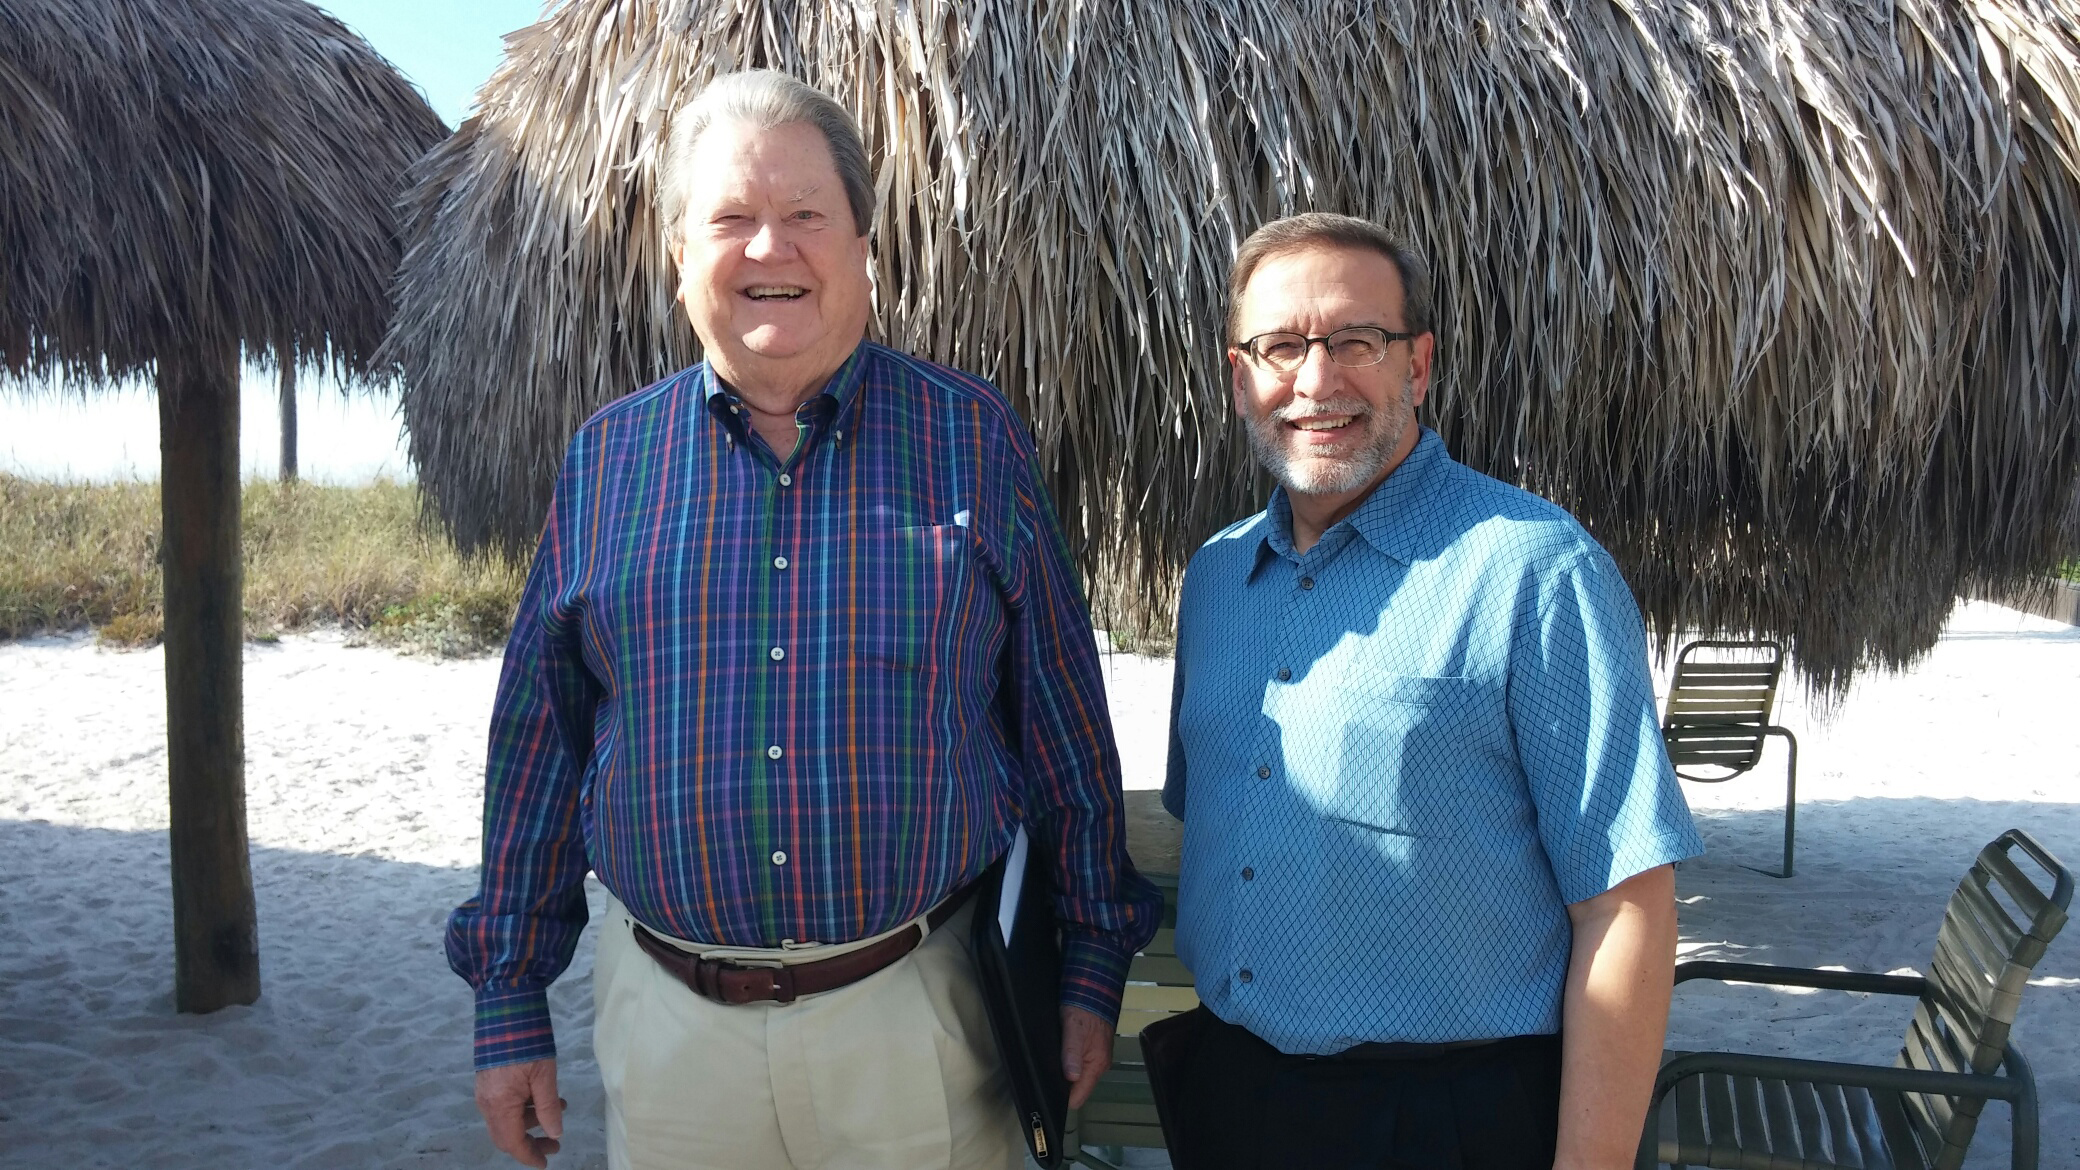 Hogarth meets with Lee Crockett, director of fish policy at The Pew Charitable Trusts, in St. Petersburg, Fla., in January 2015.